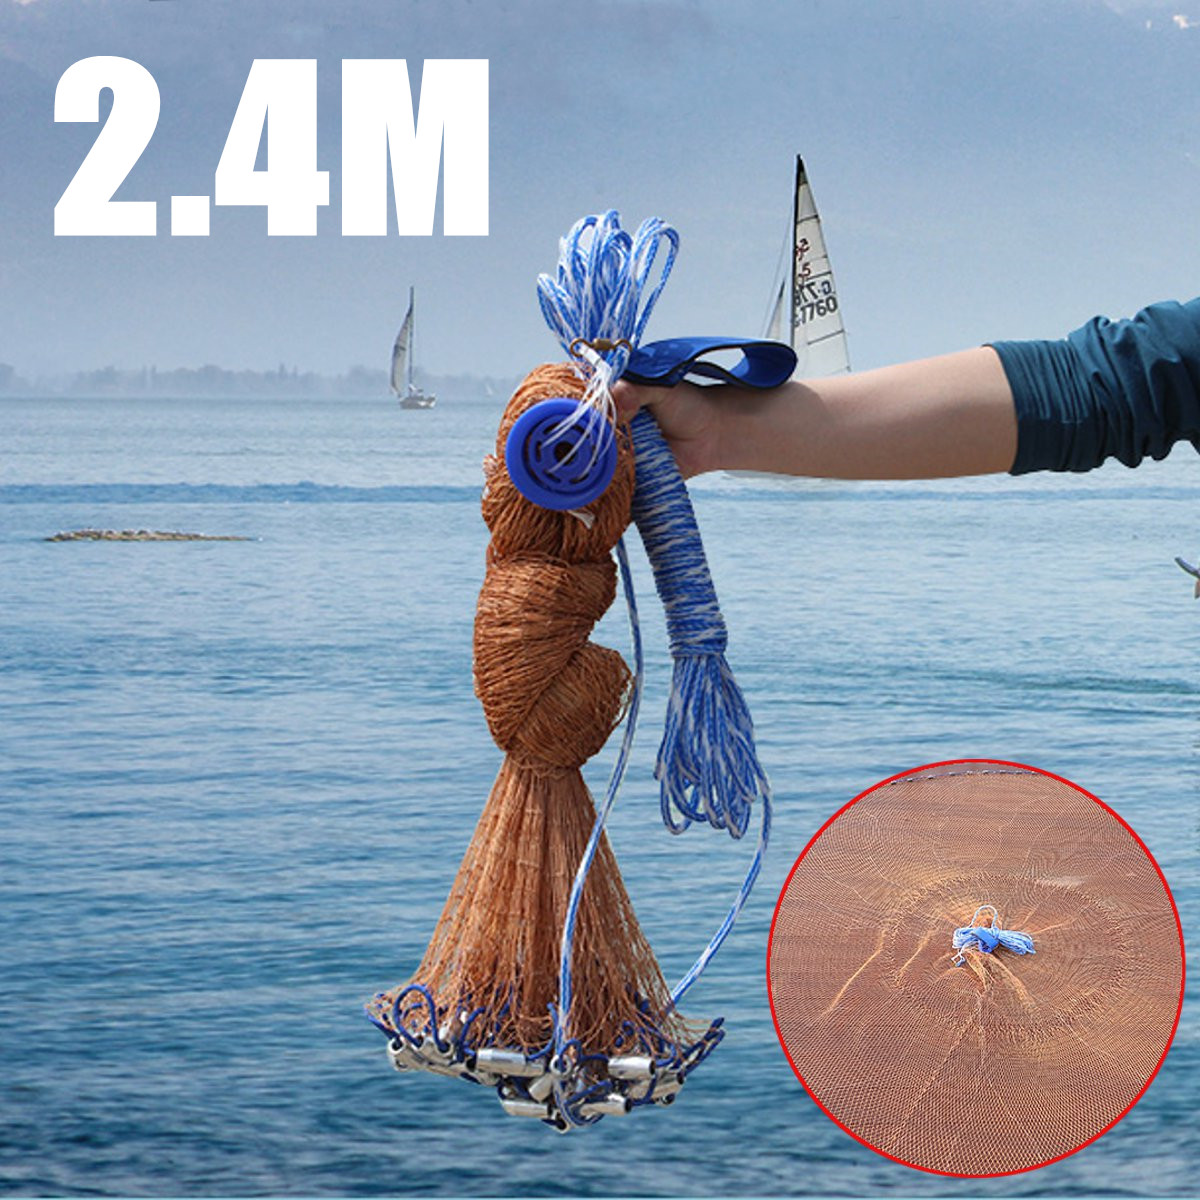 2.4M Cast Net Saltwater Bait Casting Net Catch Fishing Net American Small Mesh Trap Cast Network Fly Hunting Hand Throw Nets купить недорого в Москве